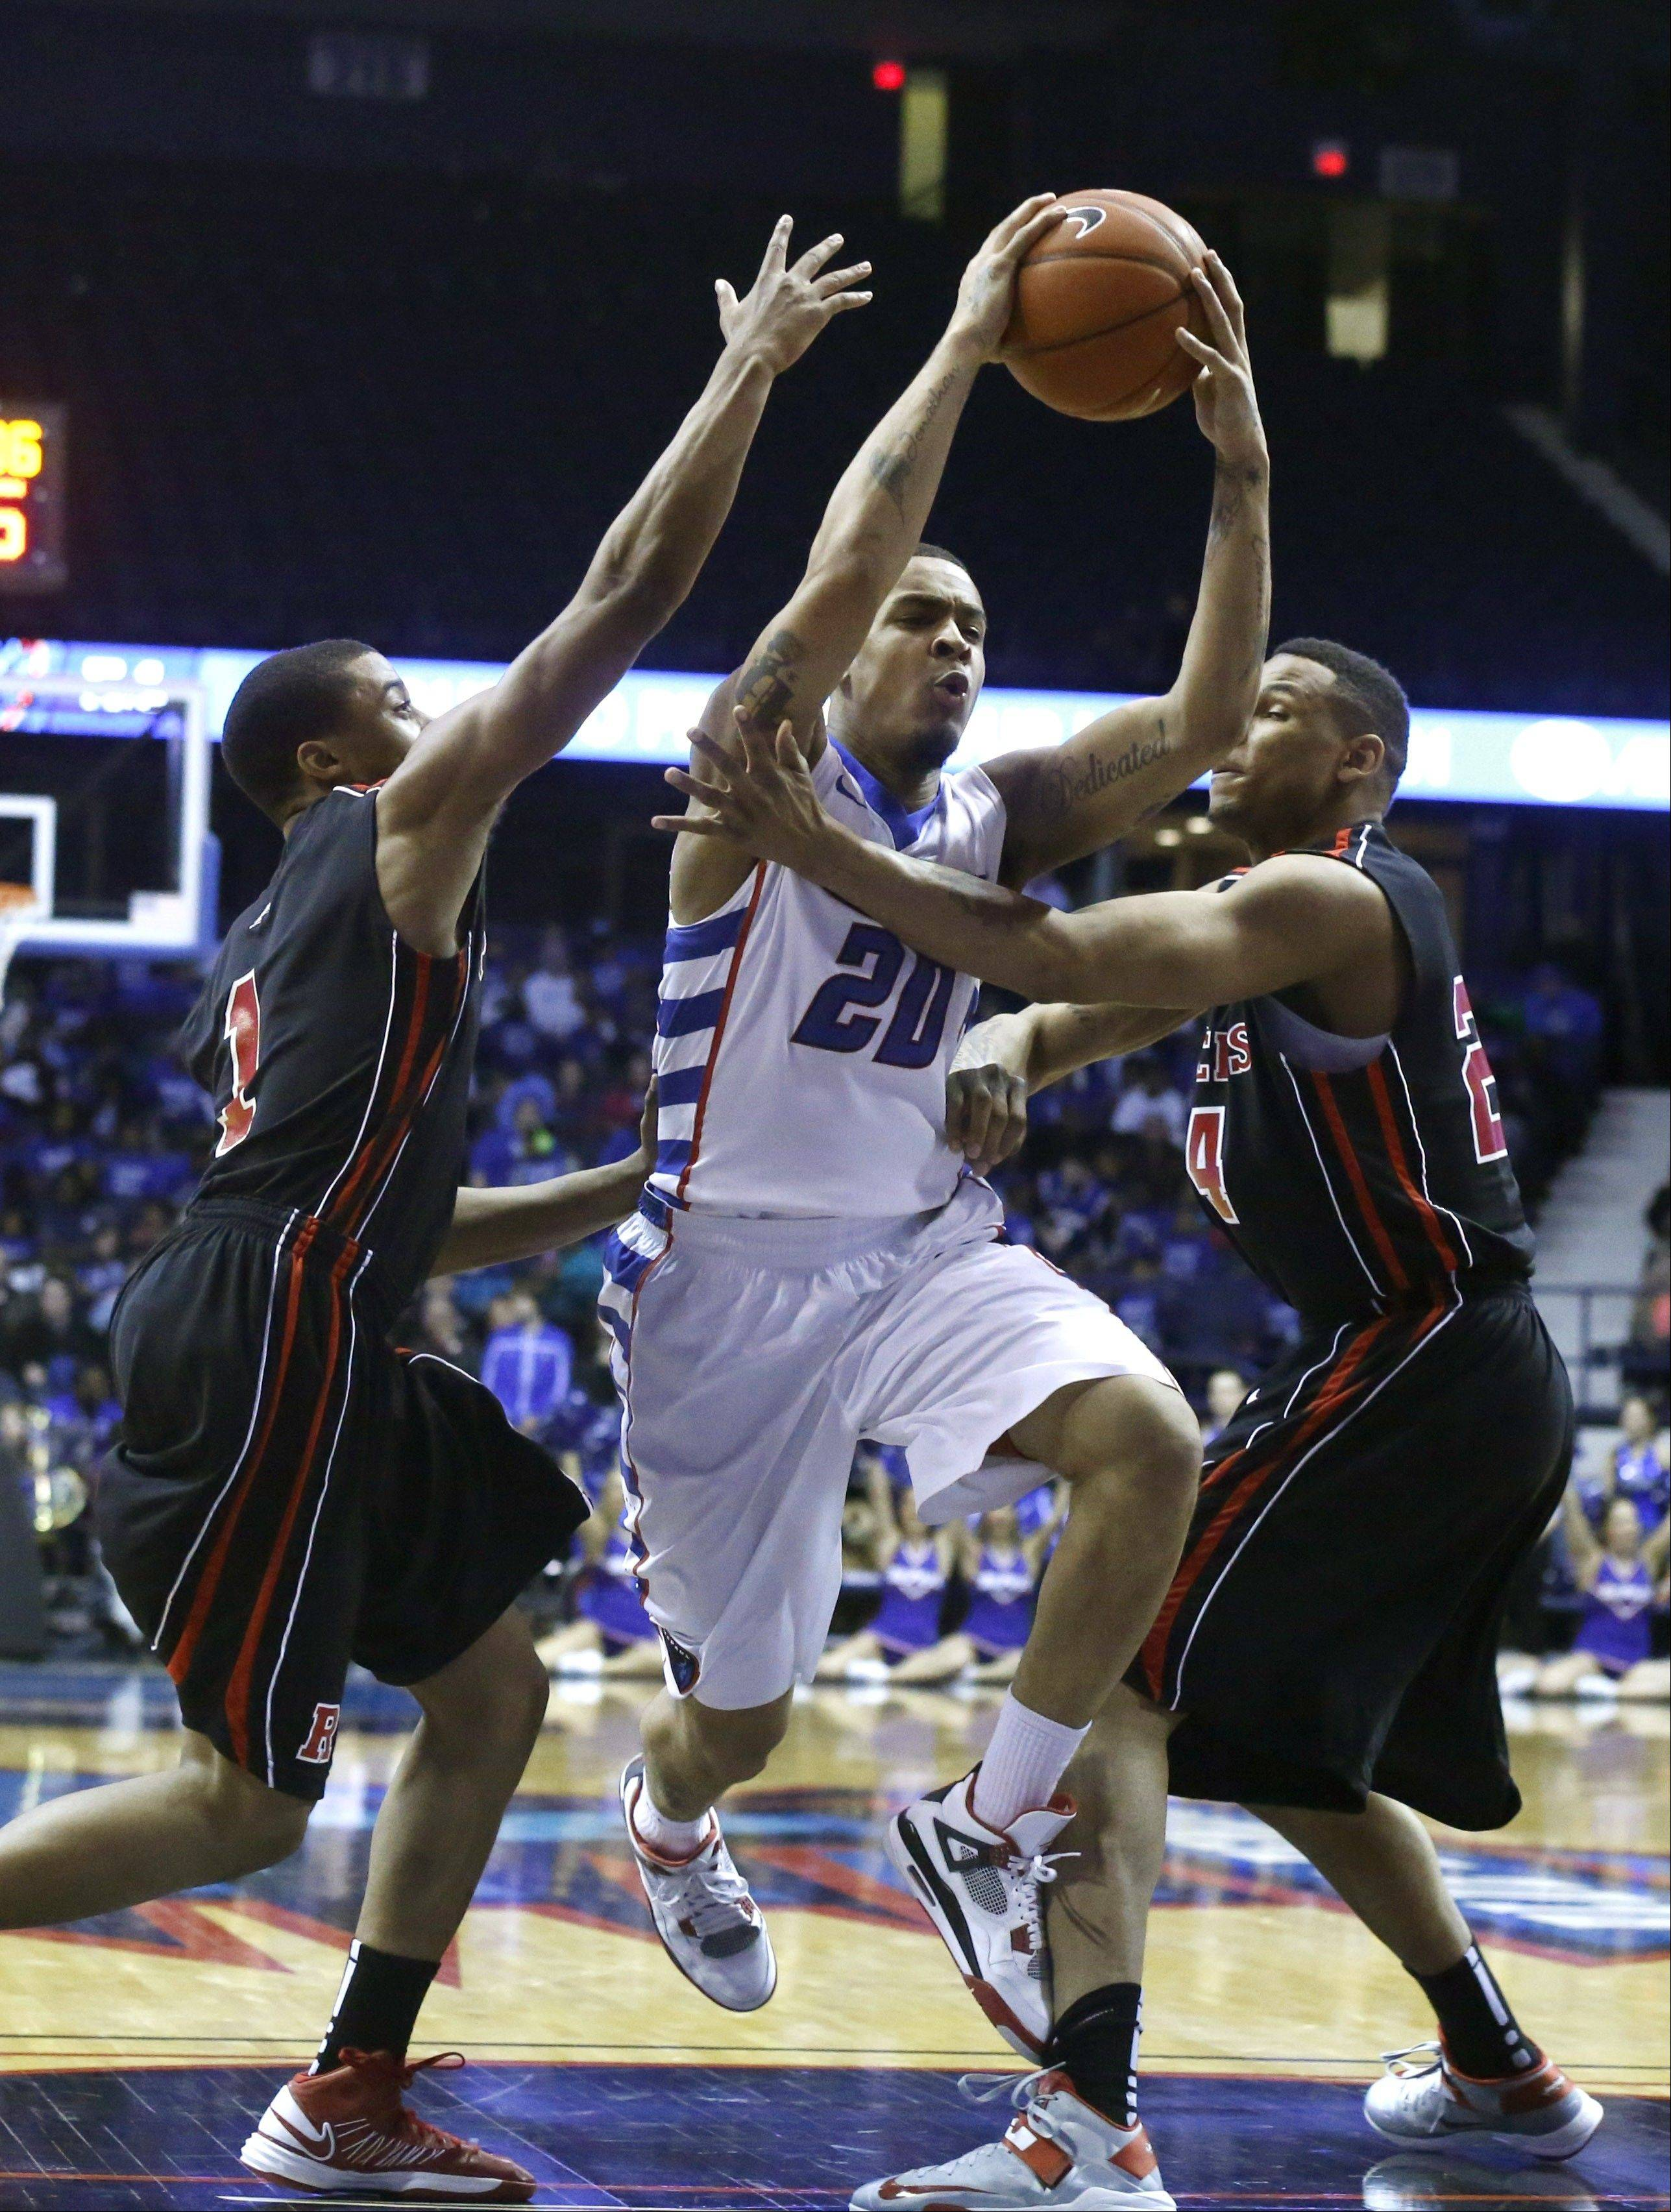 DePaul guard Brandon Young, center, splits the Rutgers defense of Jerome Seagears (1) and Vincent Garrett (24) during the second half Saturday.